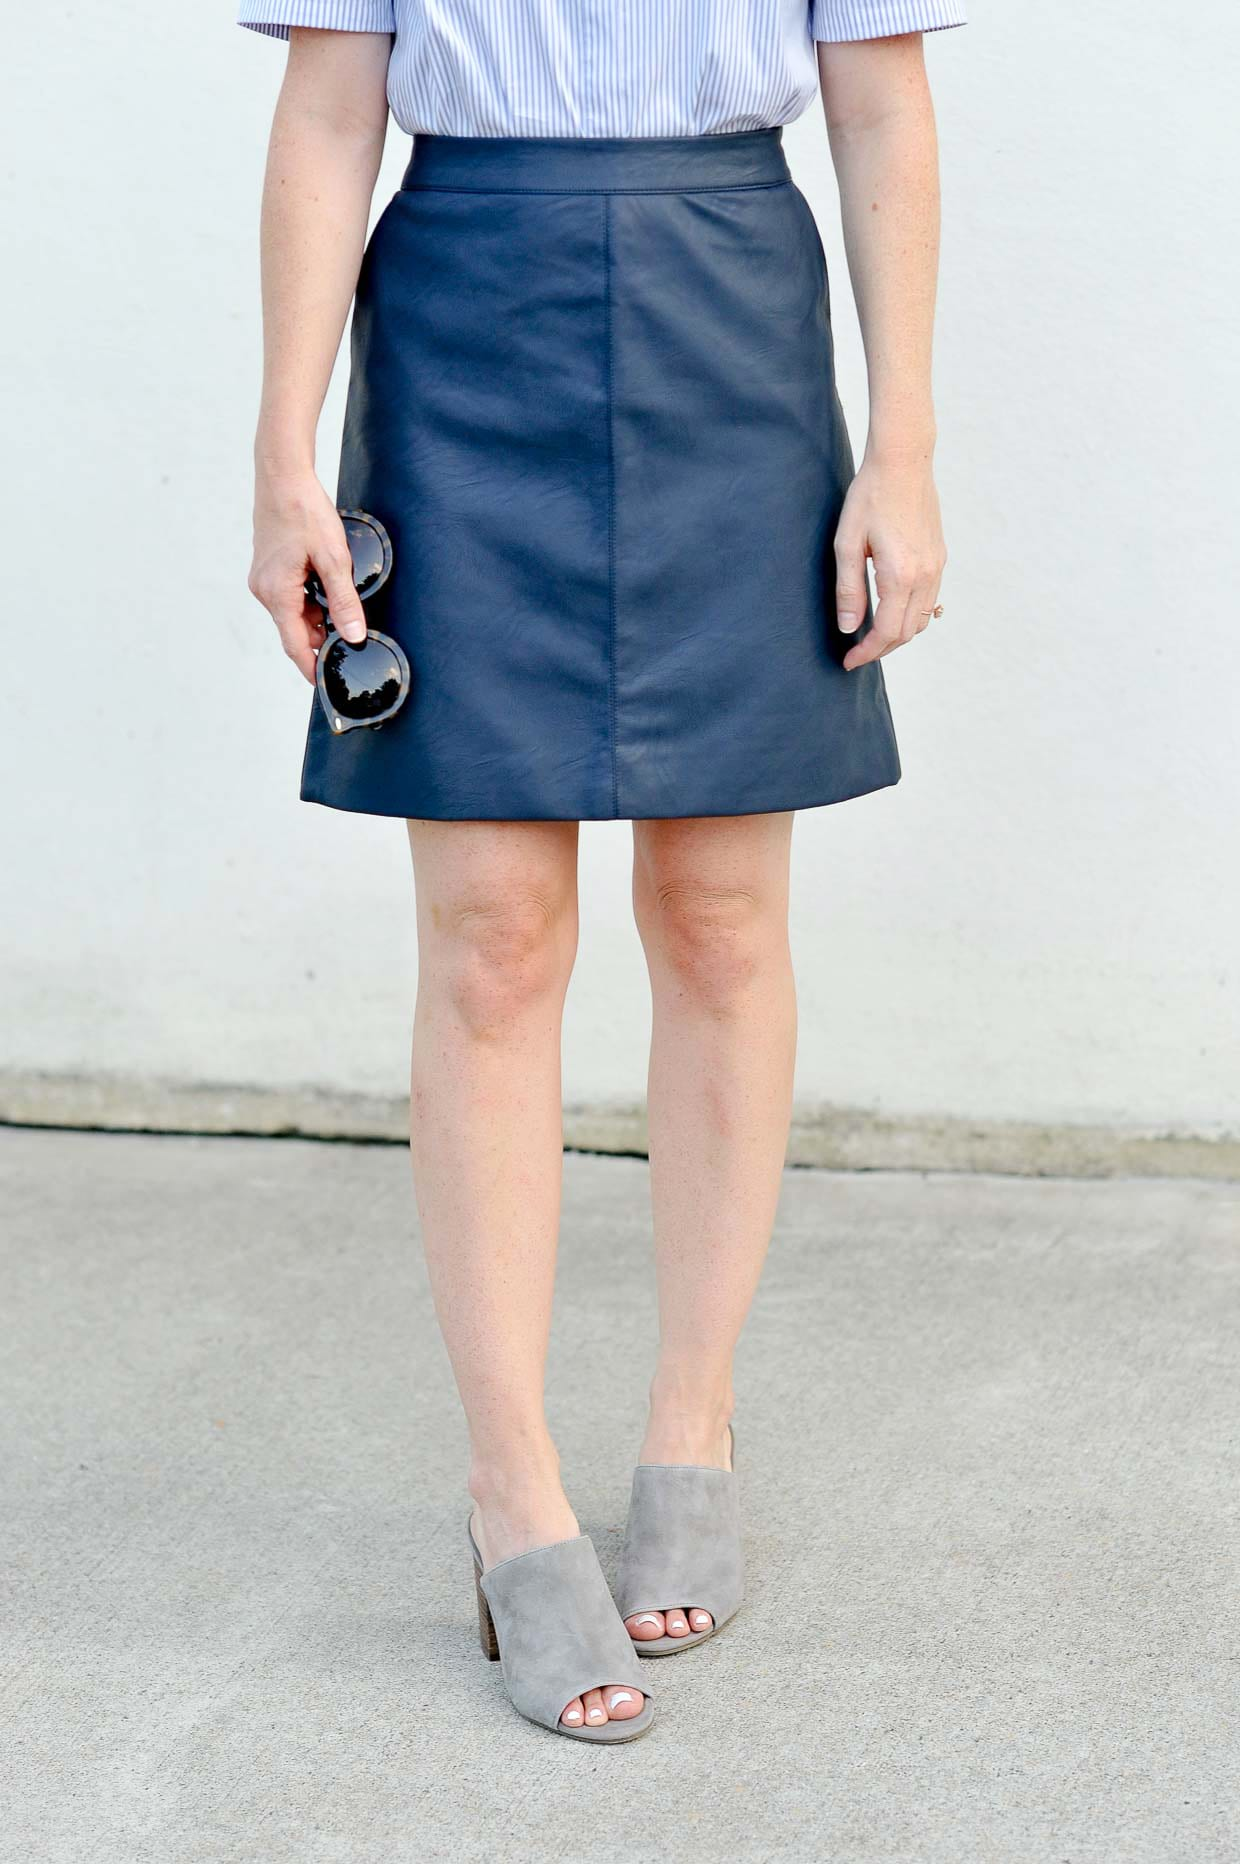 To Style A Navy Faux Leather Skirt - Poor Little It Girl